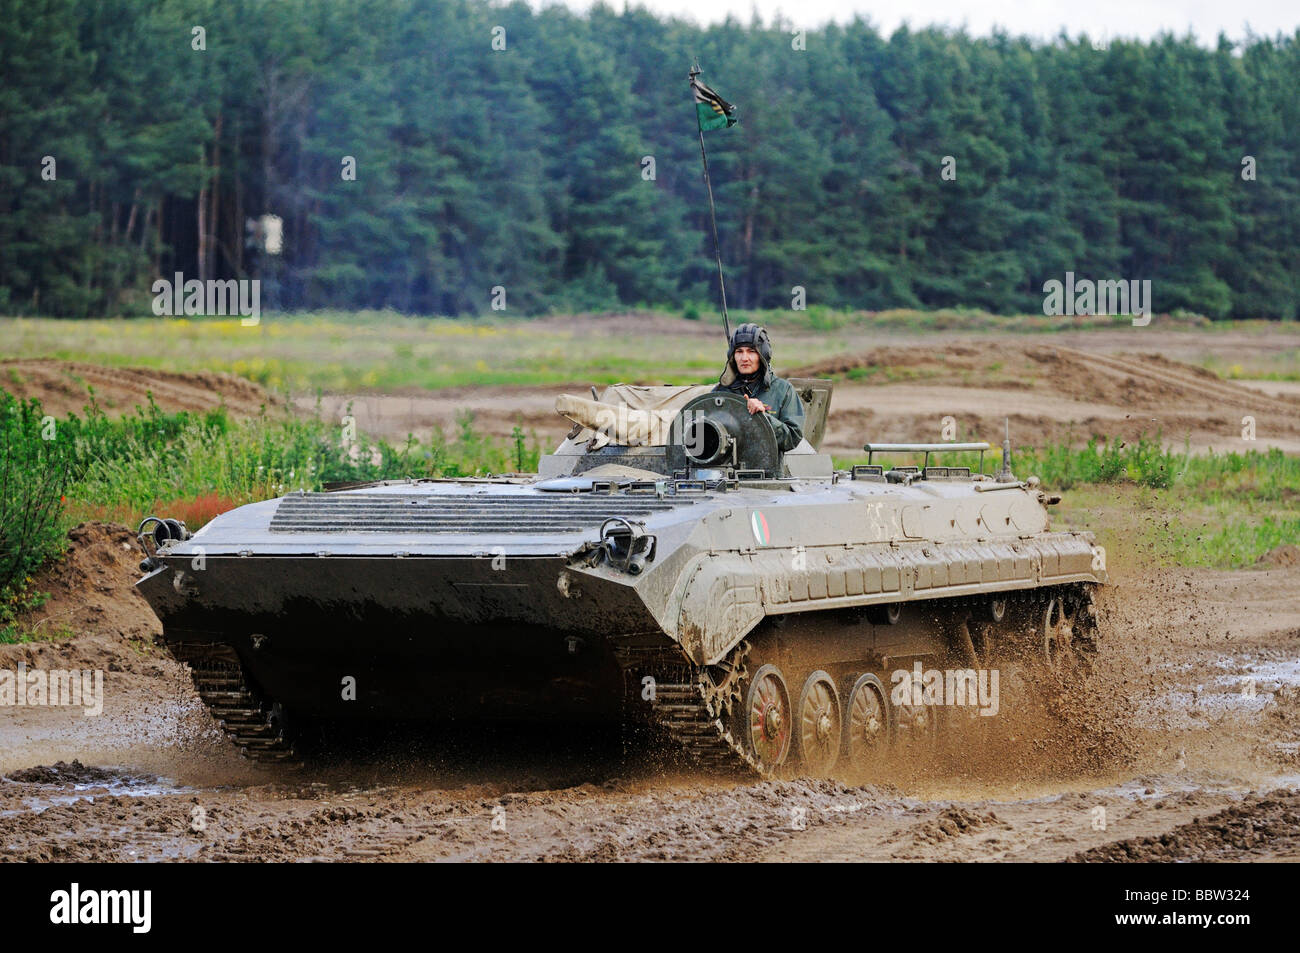 Tank driving school for tourists, BMP armored vehicle, Steinhoefel, Brandenburg, Germany, Europe - Stock Image